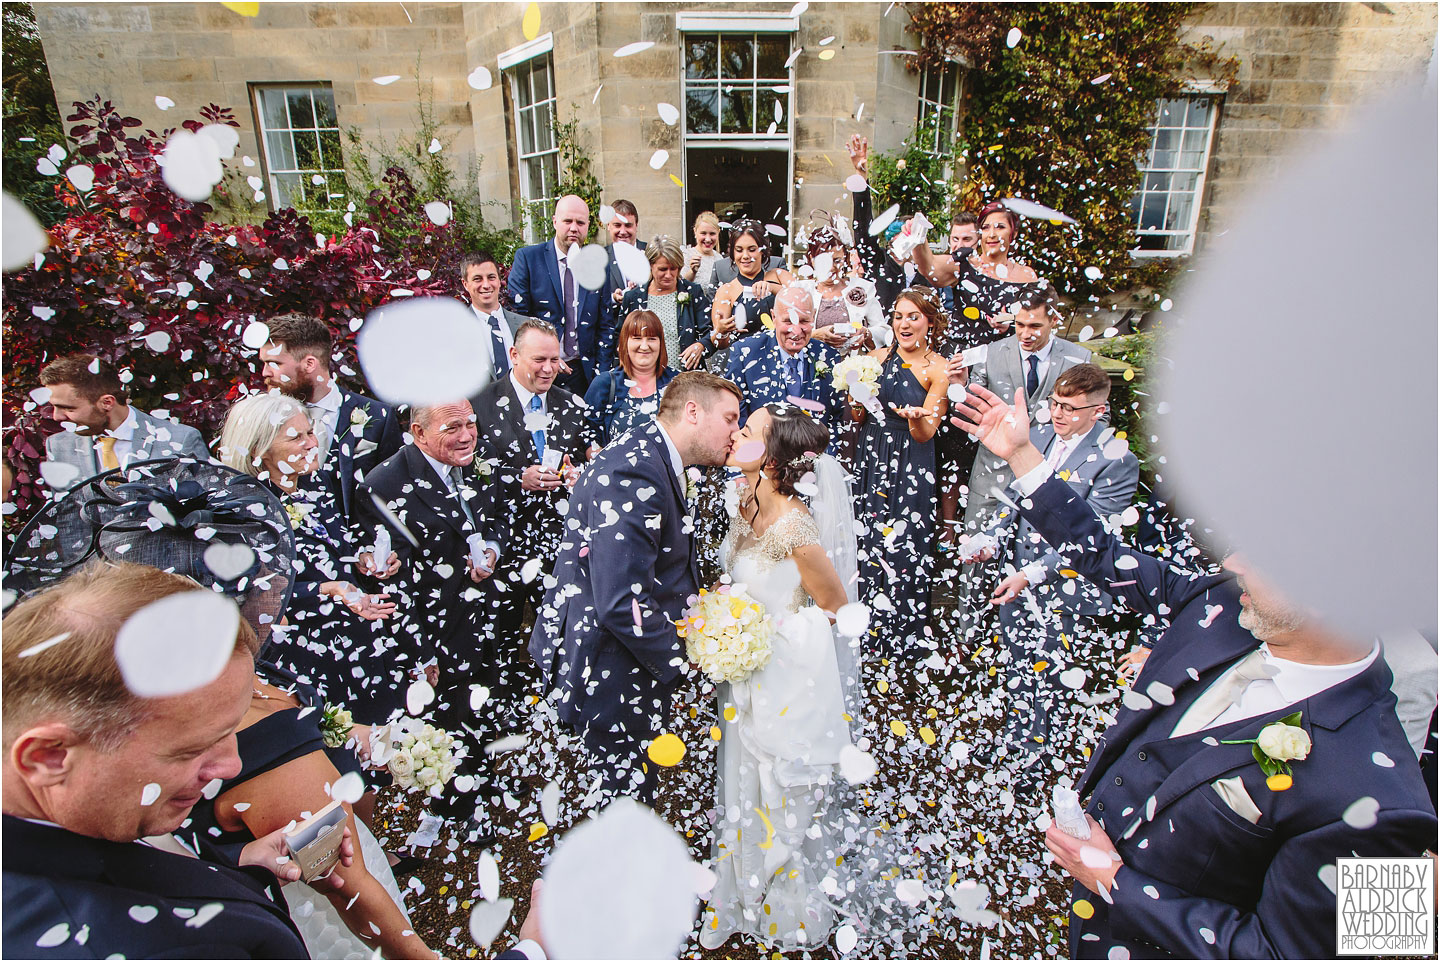 Middleton Lodge Richmond, Middleton Lodge wedding photographer, Middleton Lodge Wedding Photography, Yorkshire Wedding Photographer Barnaby Aldrick